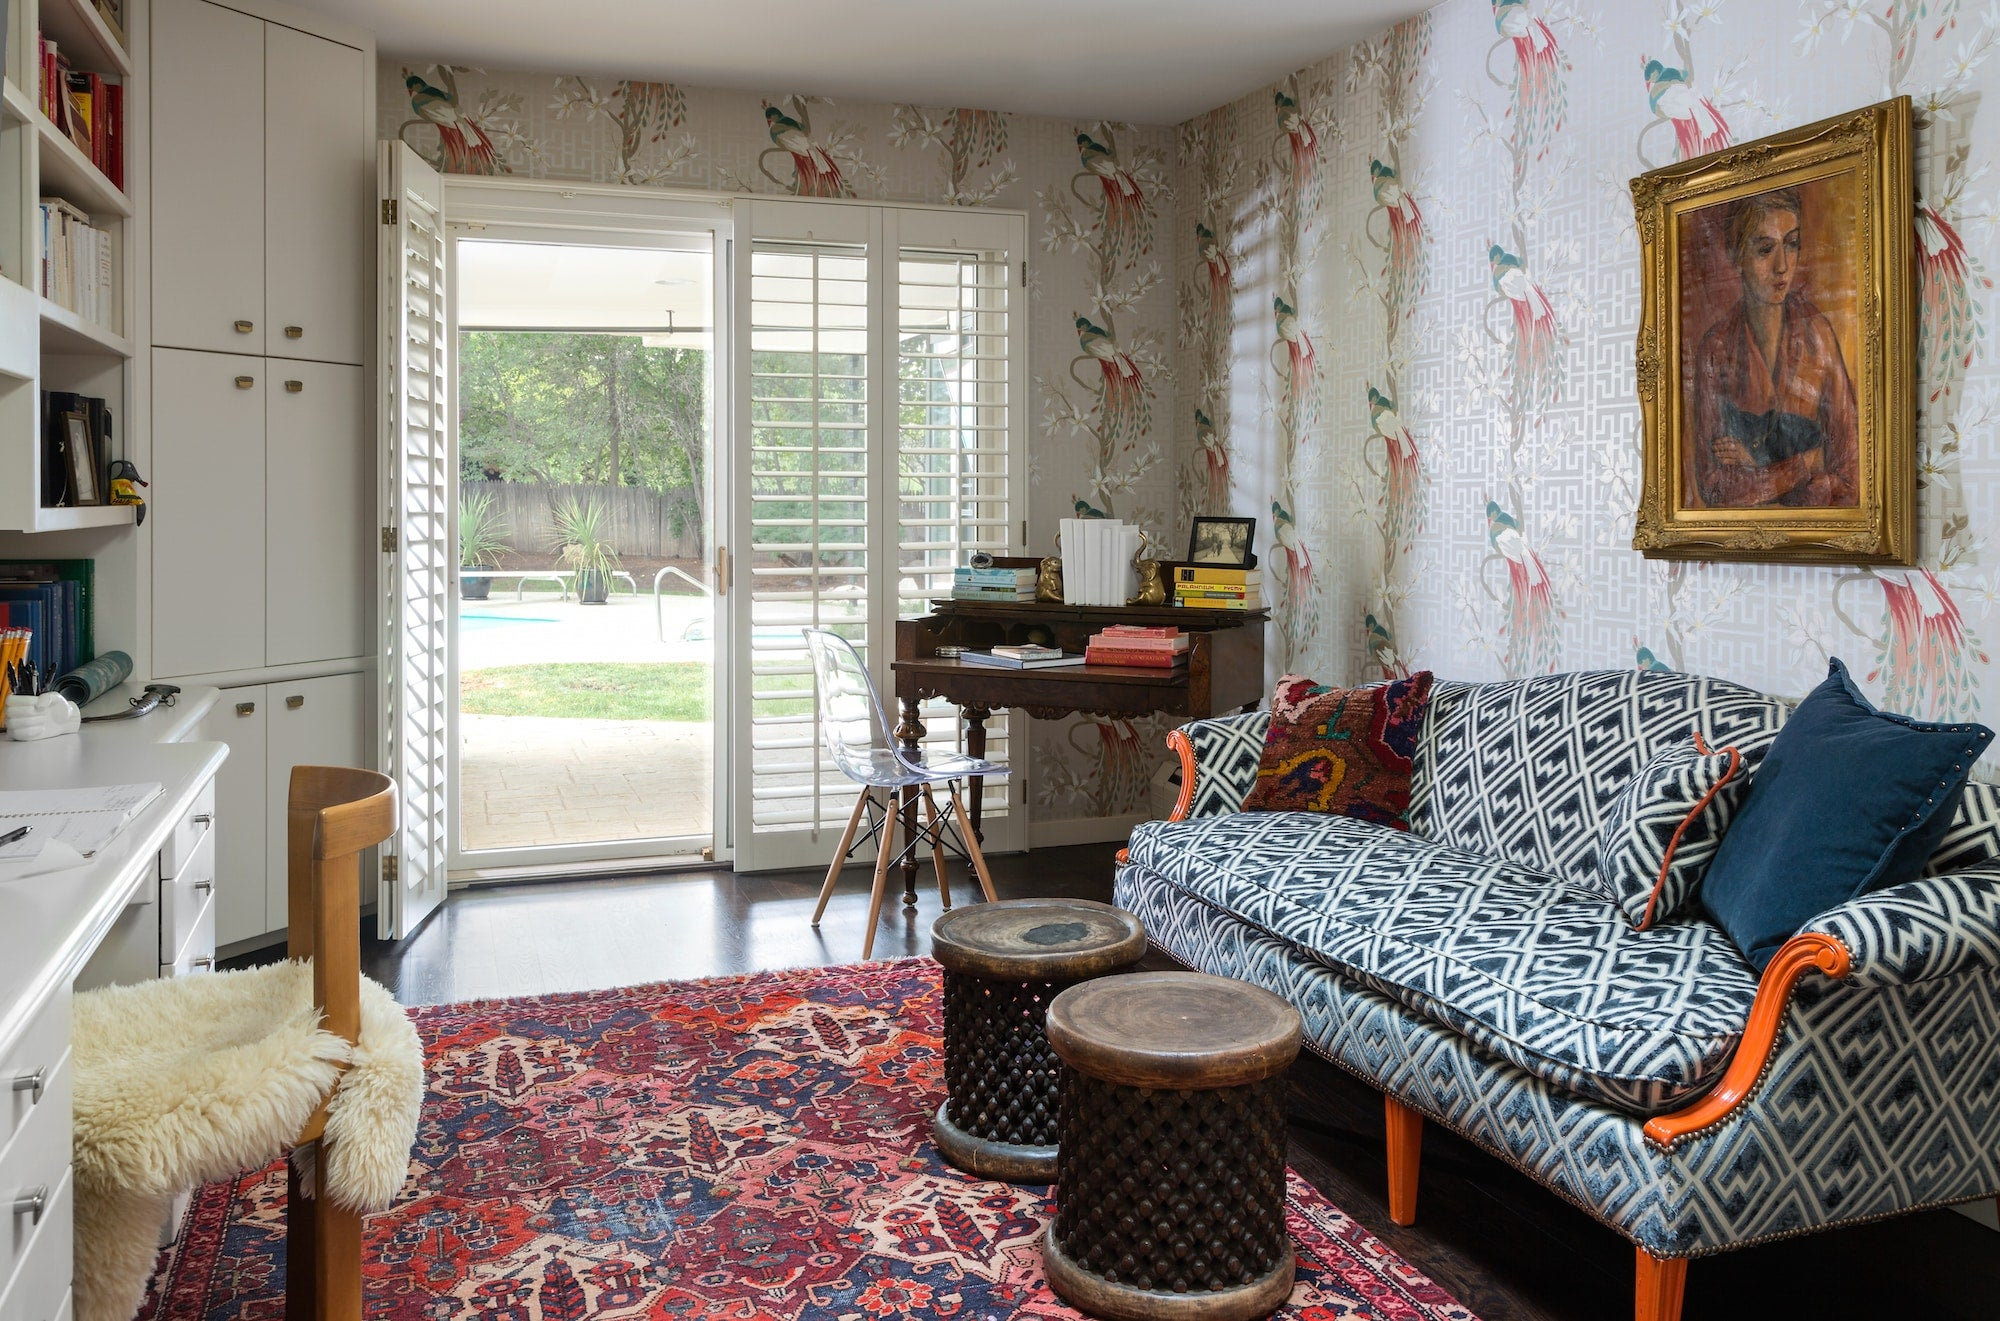 Andrea Schumacher's own study in Bow Mar, Colorado, holds true to her curated-over-time philosophy, filled with pieces and moments that she's collected over the years. Here, she followed her rule of three with Nina Campbell's whimsical Paradiso wallcovering, a modern geometric print on the sofa and a vintage Kurdish rug. Photo by Emily Minton Redfield